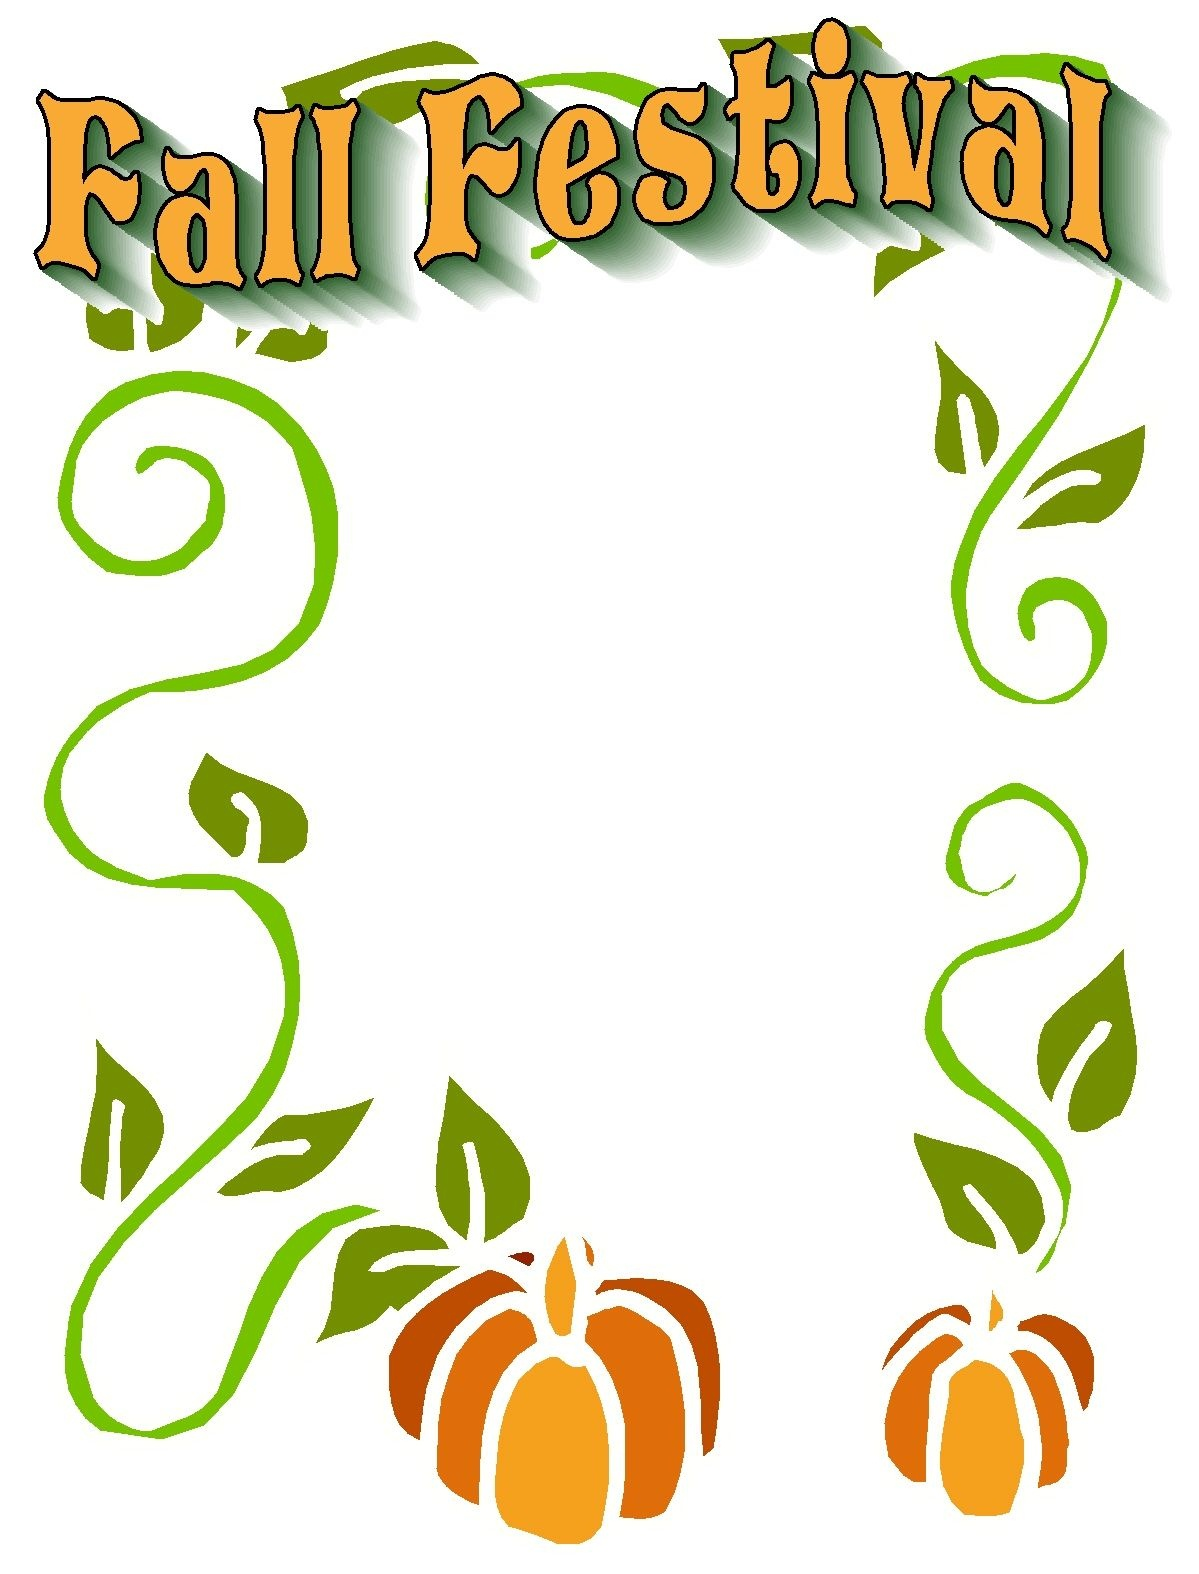 Fall Festival Graphics | Christian Images In My Treasure Box: Fall - Free Printable Fall Festival Flyer Templates